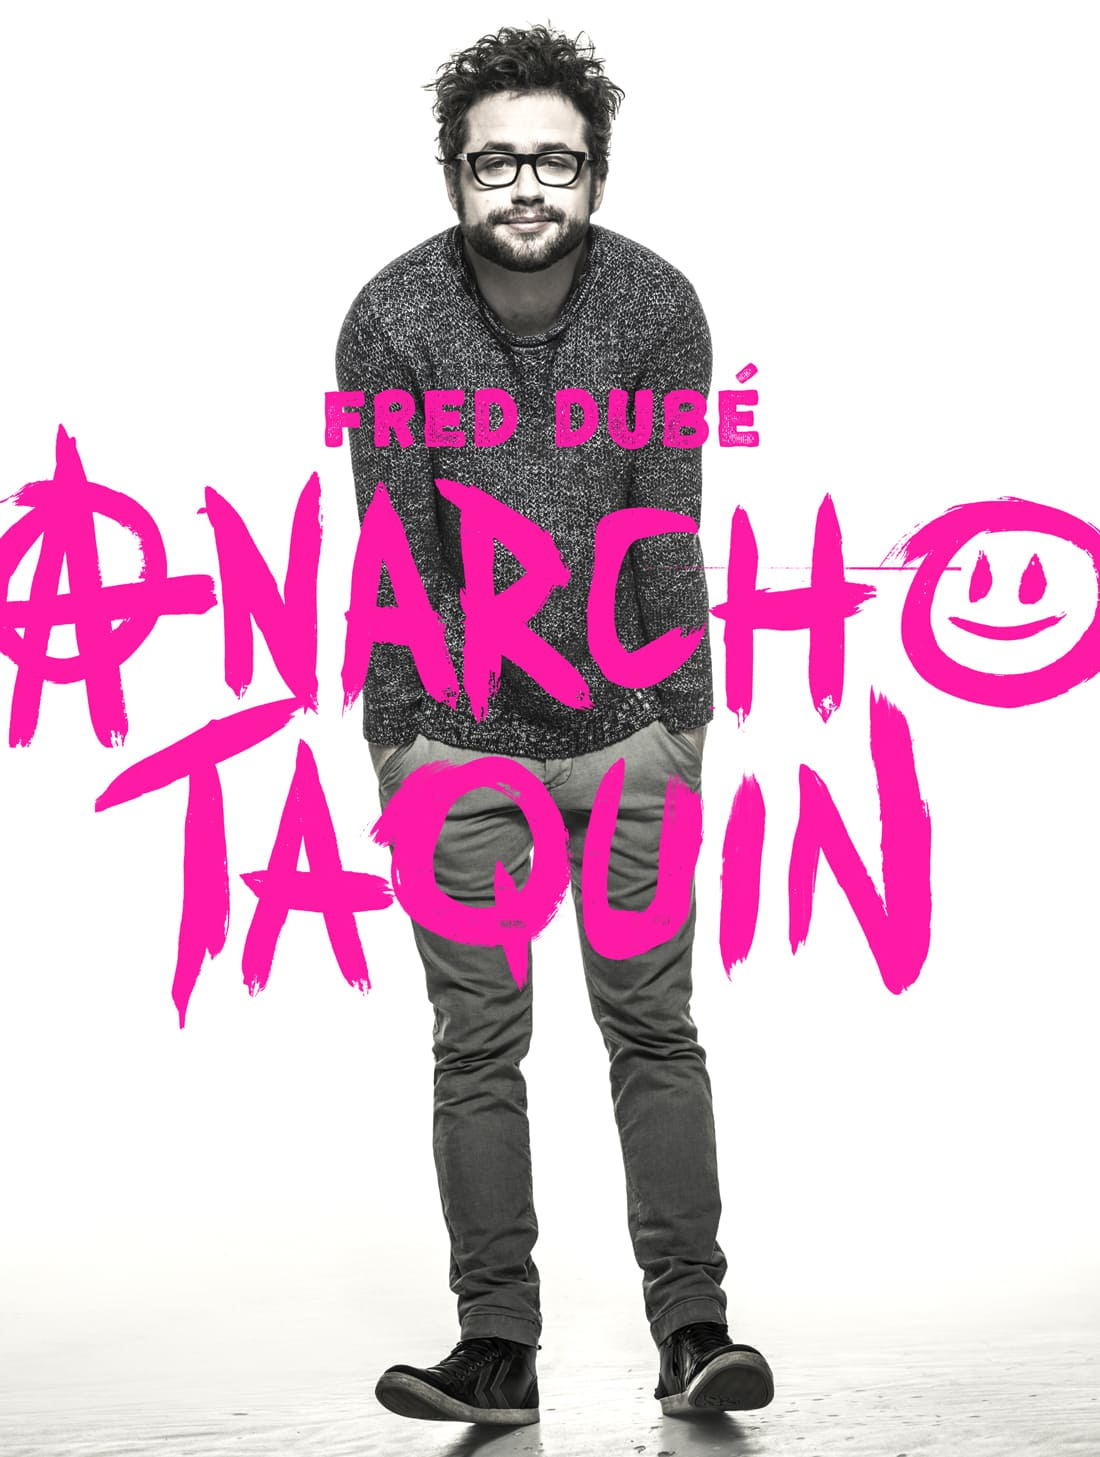 Poster for Anarcho-Taquin